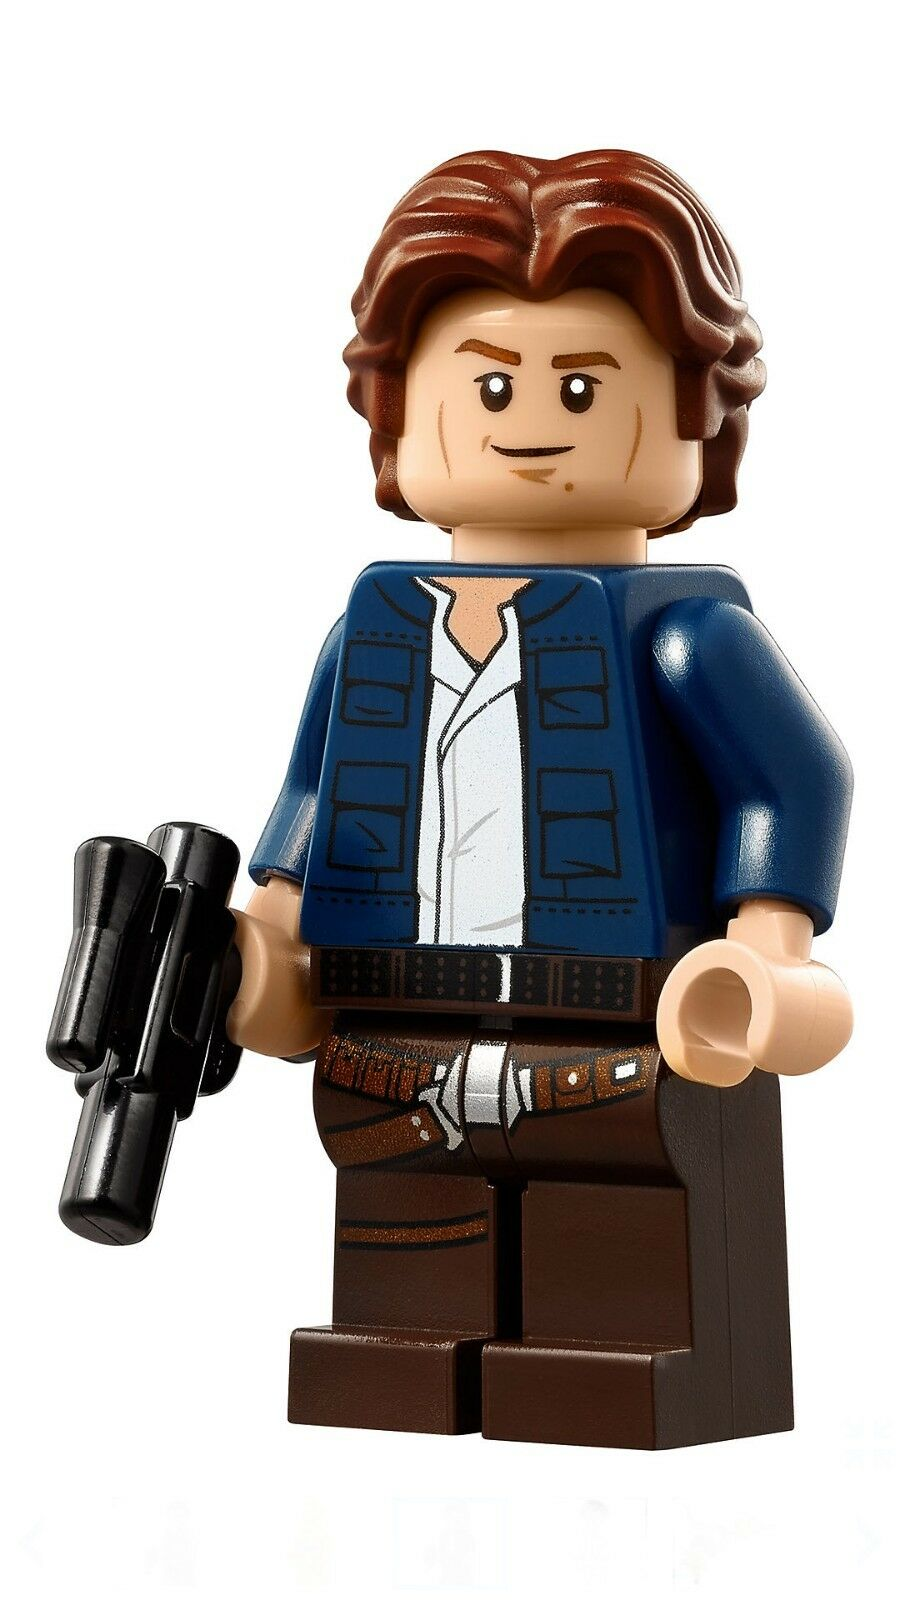 Lego Star Star Star Wars - Bespin Han Solo Minifigure from 75192 - Brand New 0ece96